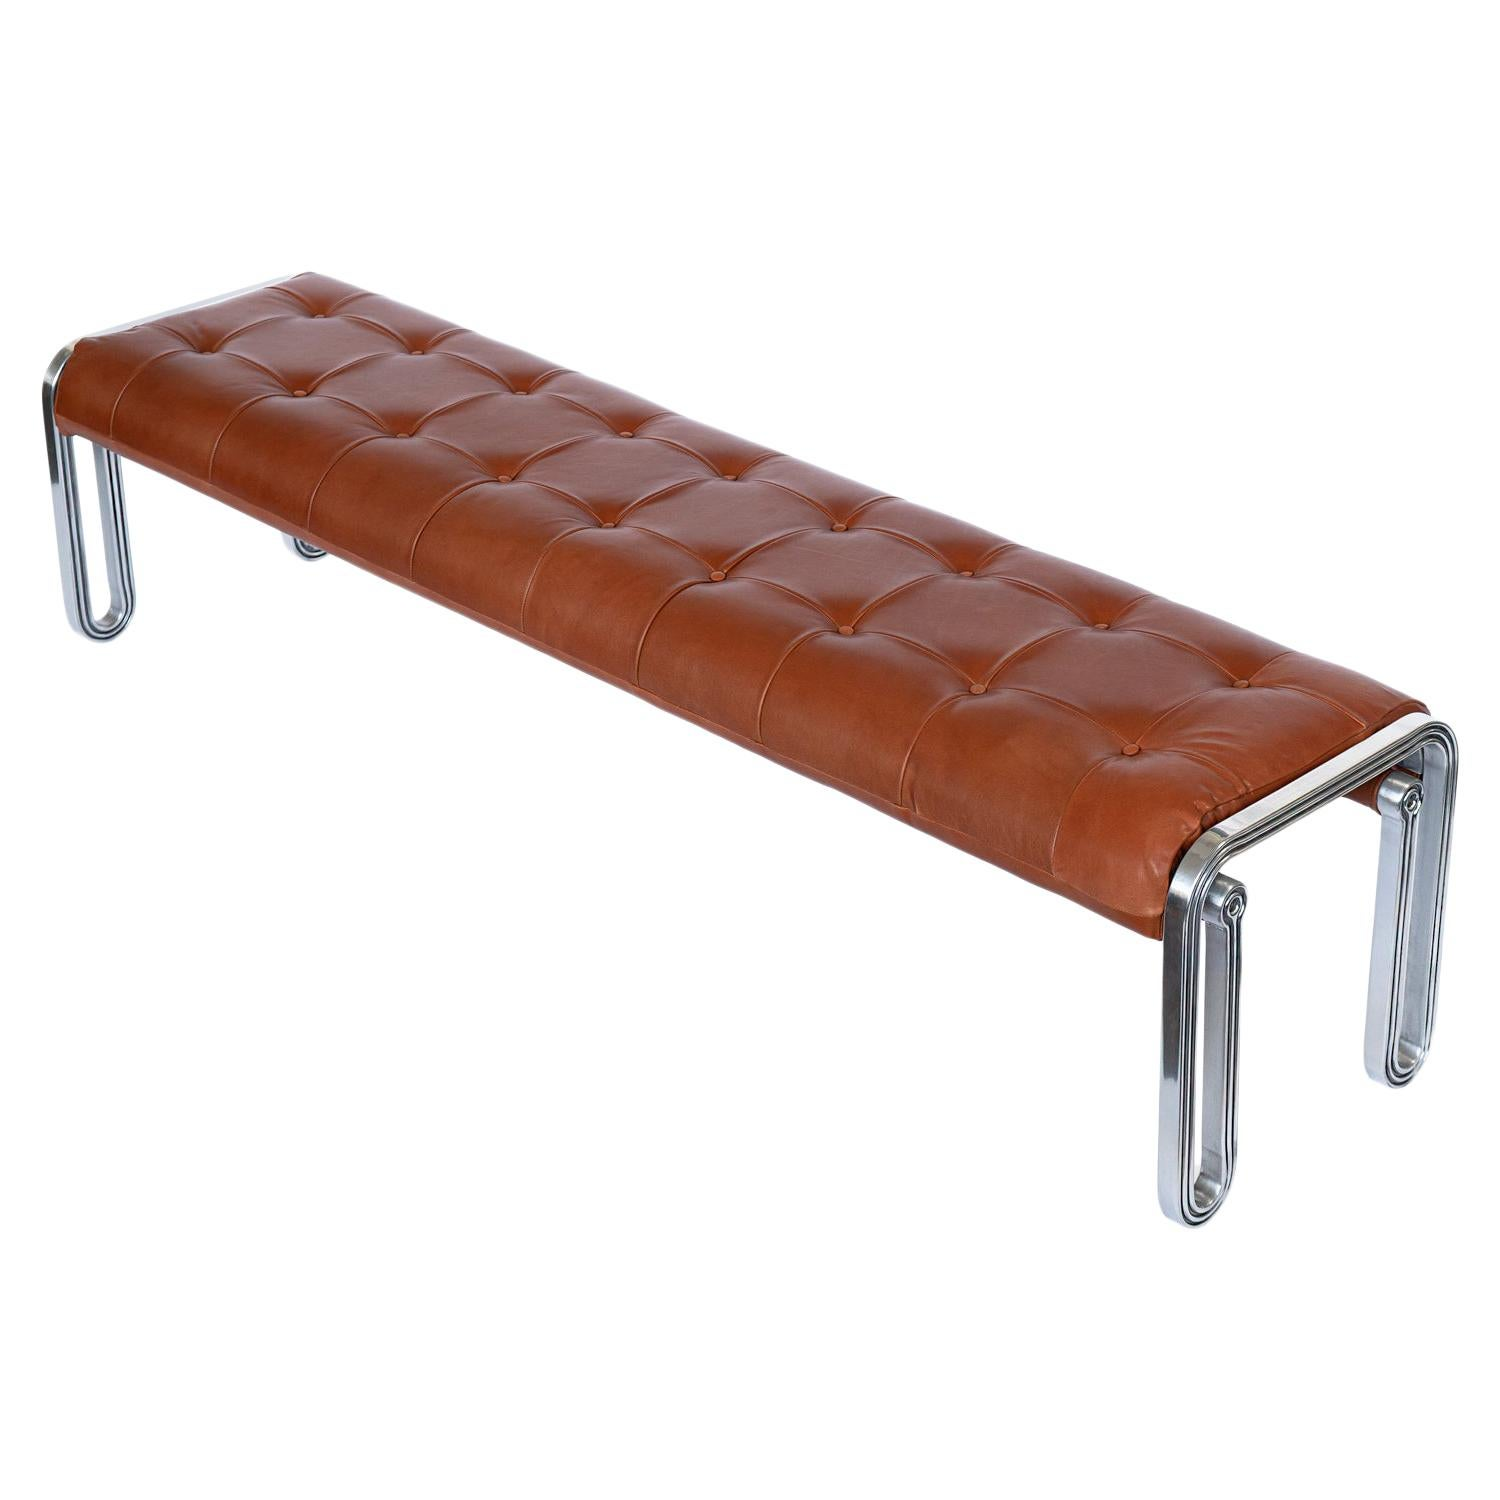 Nº141 Vestibule Bench by Avoirdupois, a Metal and Tufted Leather Entry Bench